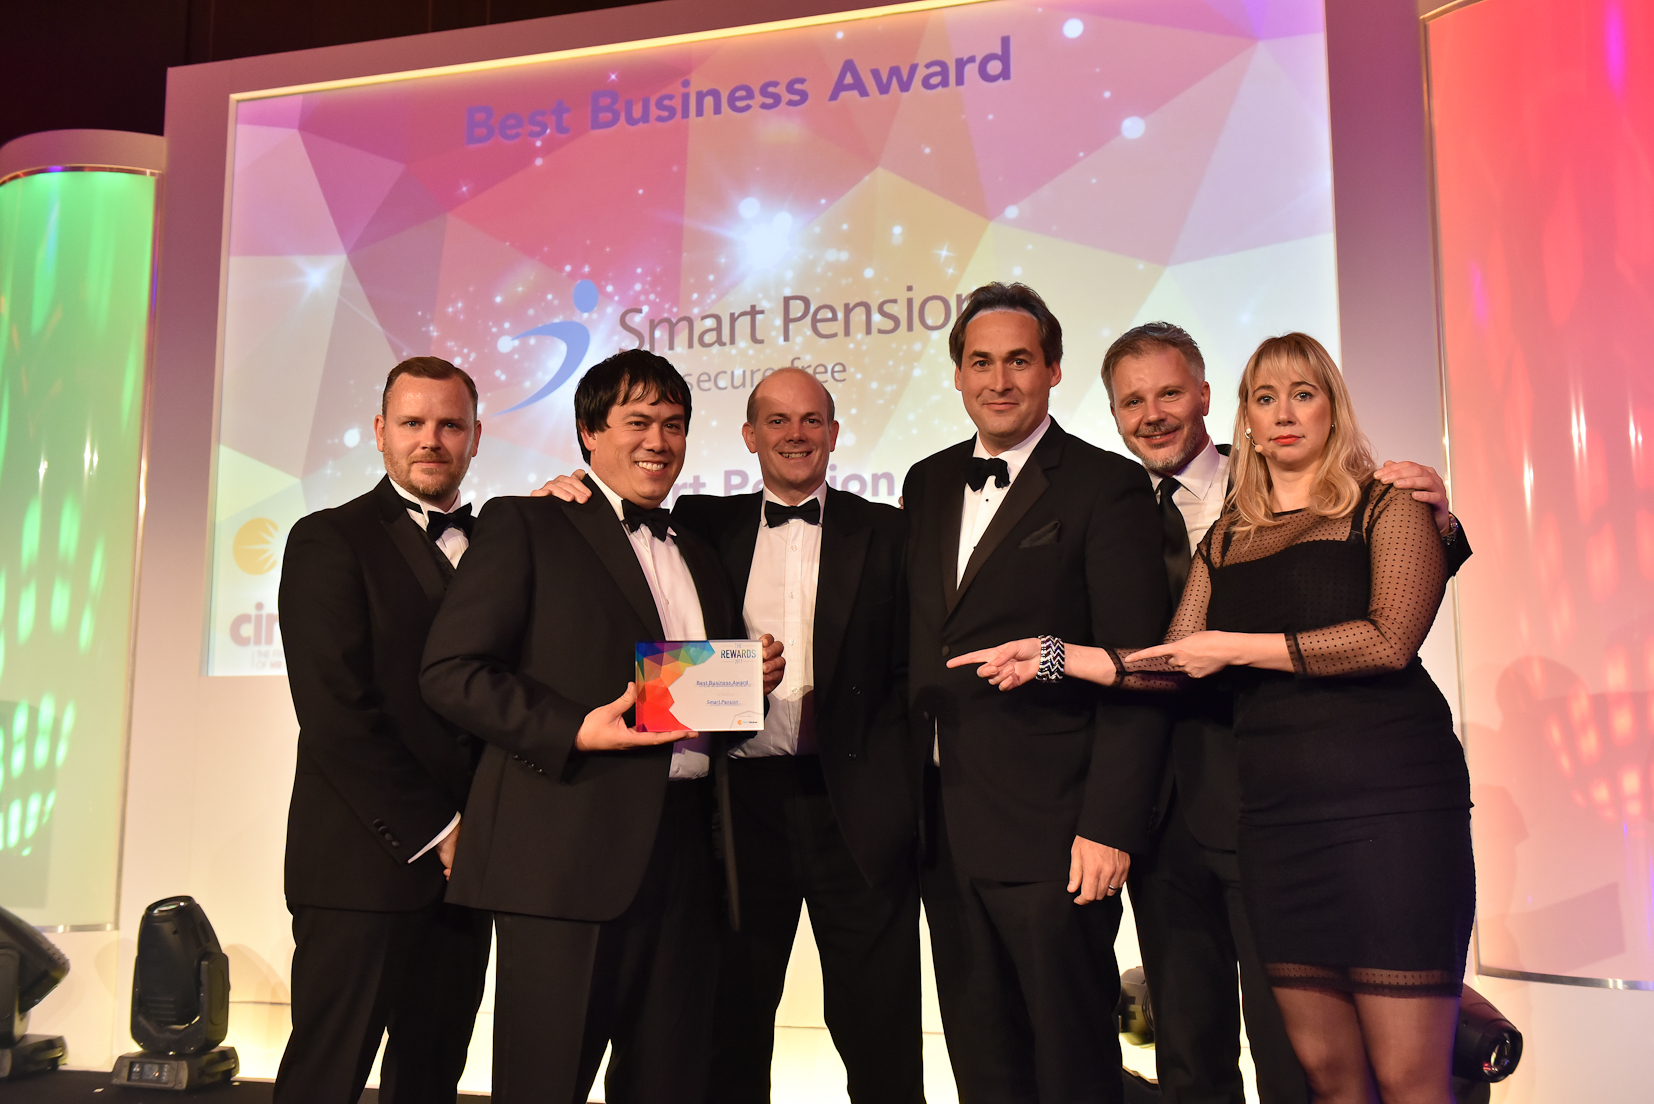 Winners 2017 - 1 Best Business Award - sponsored by FMP Global